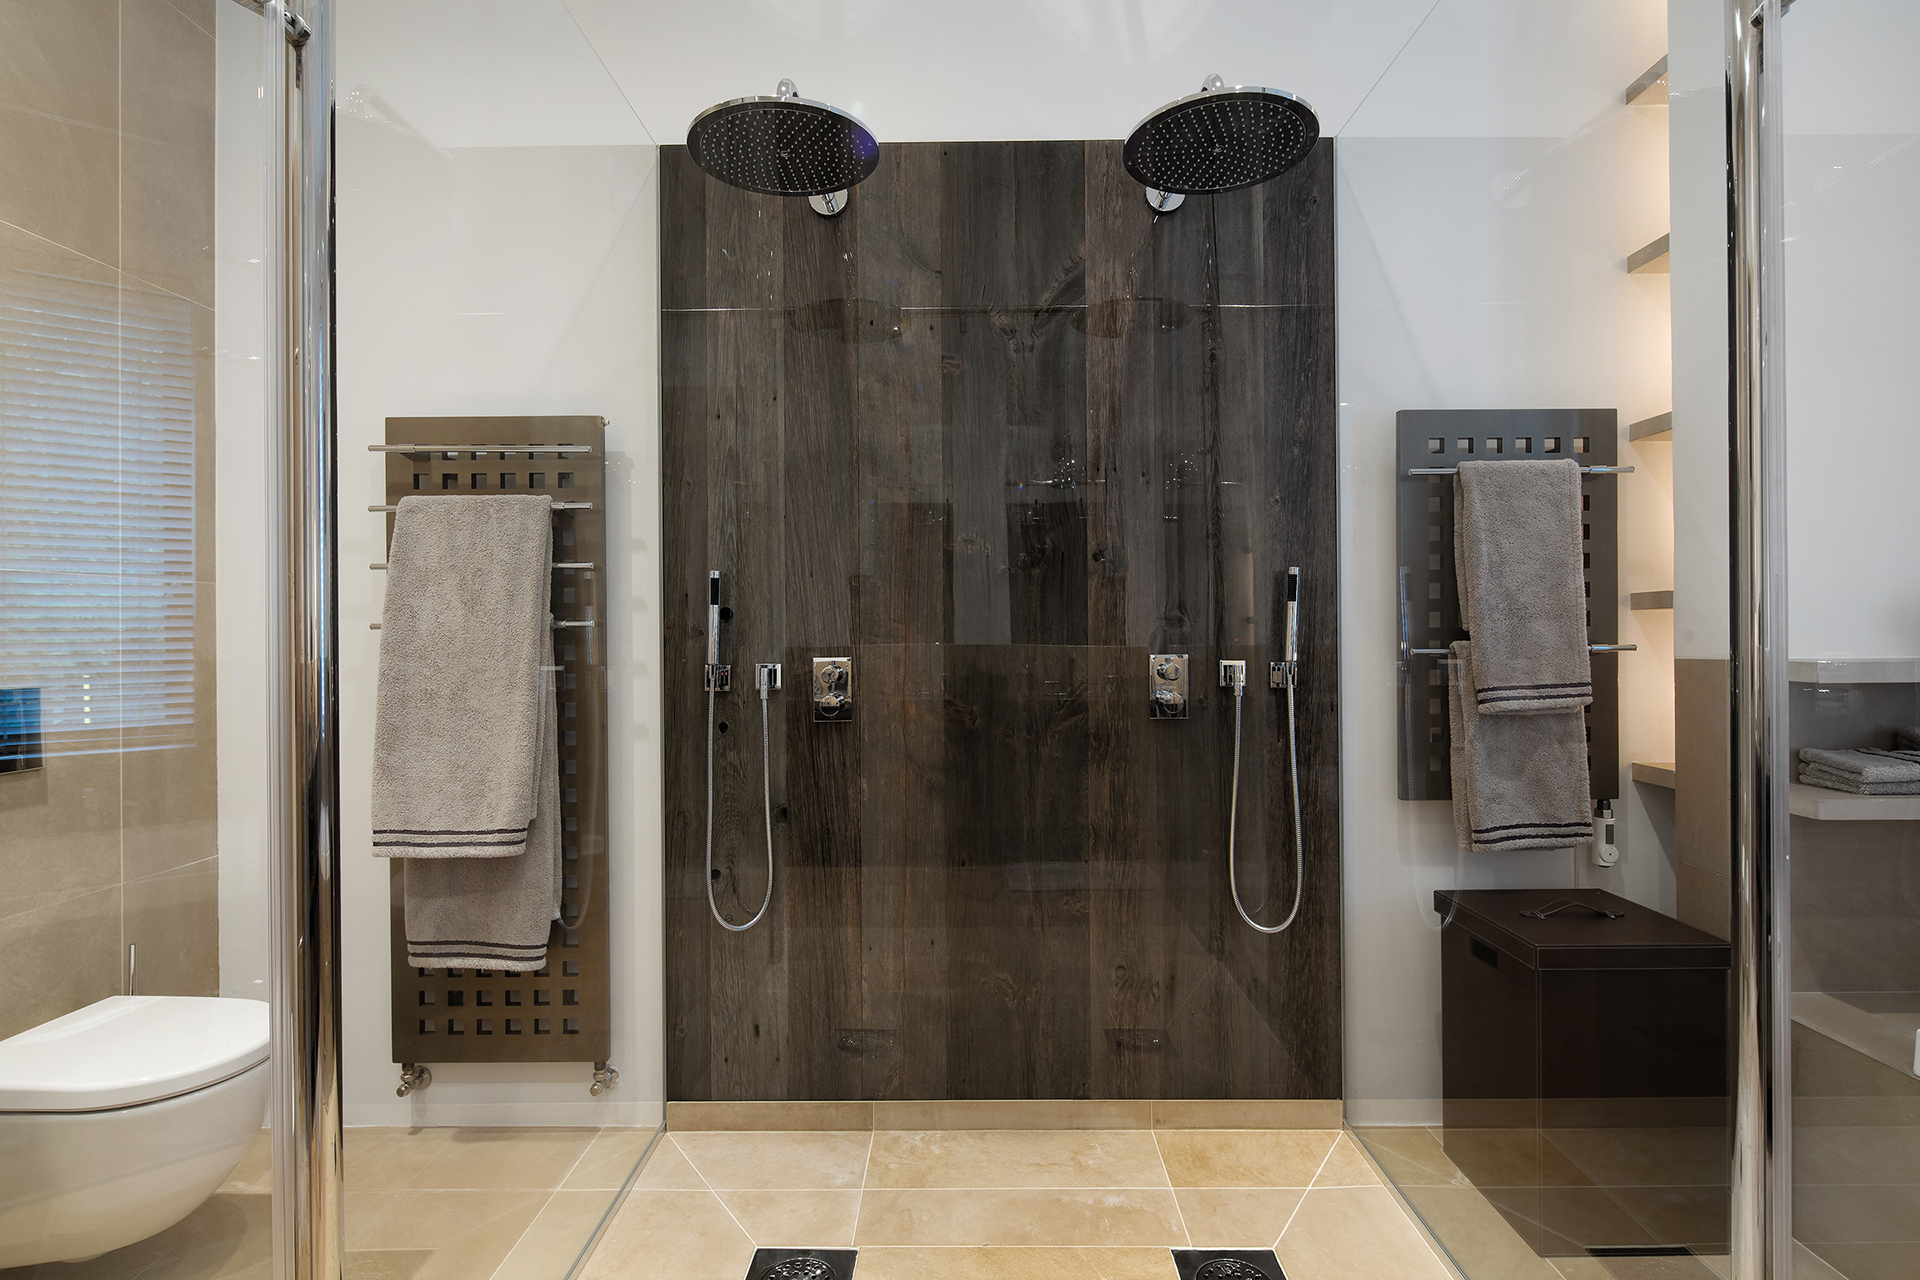 Double rain shower in glass cubicle